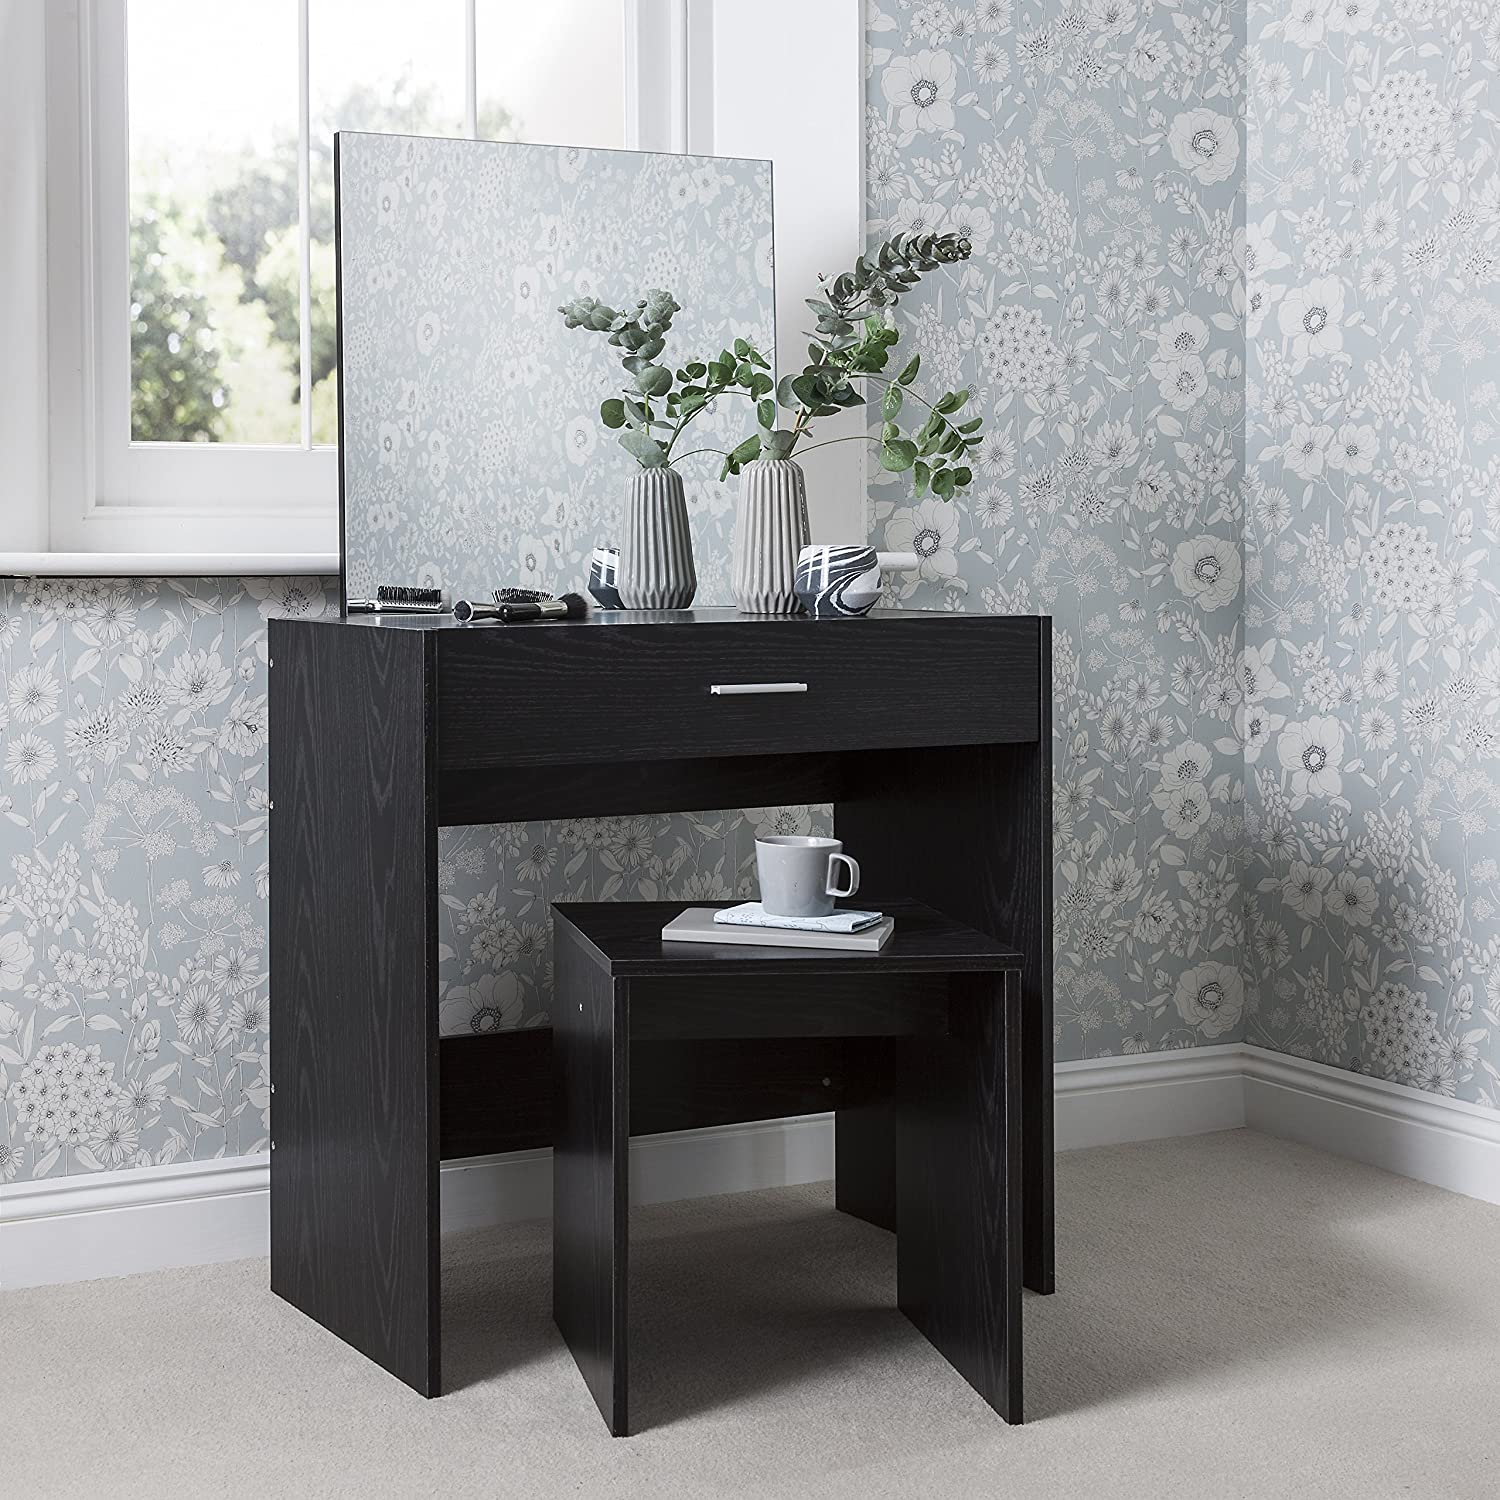 Laura James Dressing Table With Mirror And Stool Set (Black)